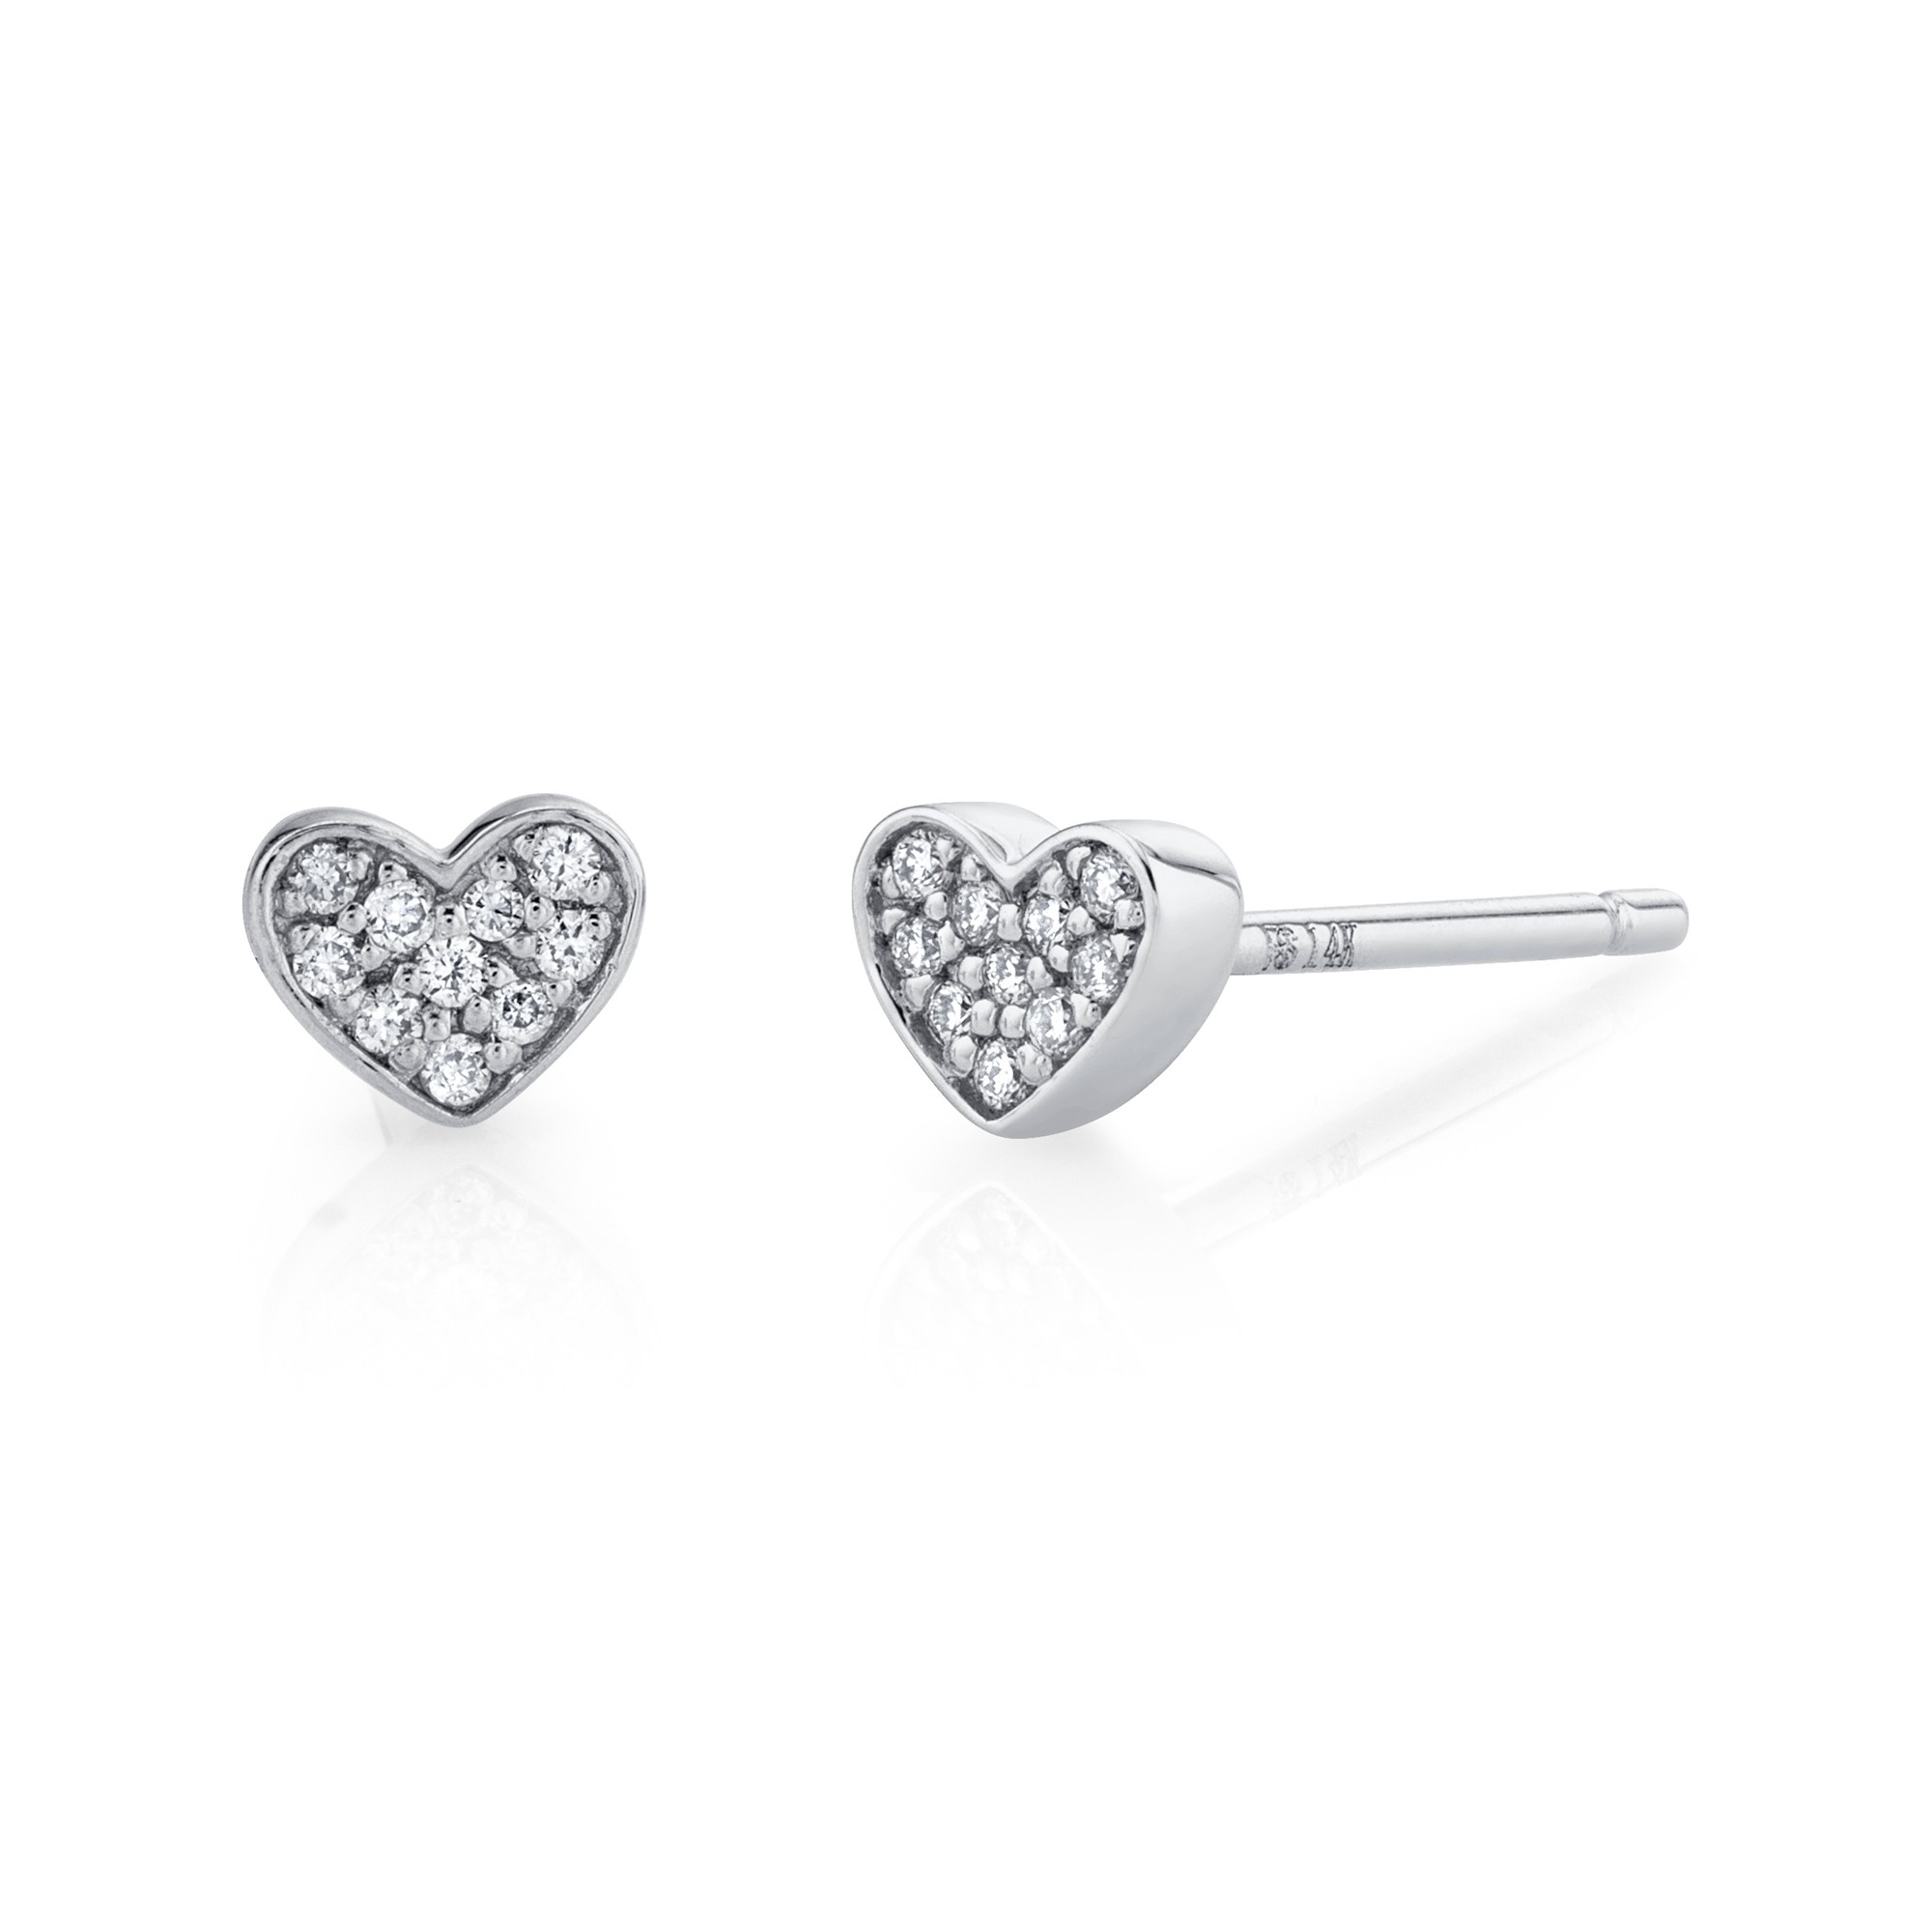 14k White Gold Heart Diamond Earrings